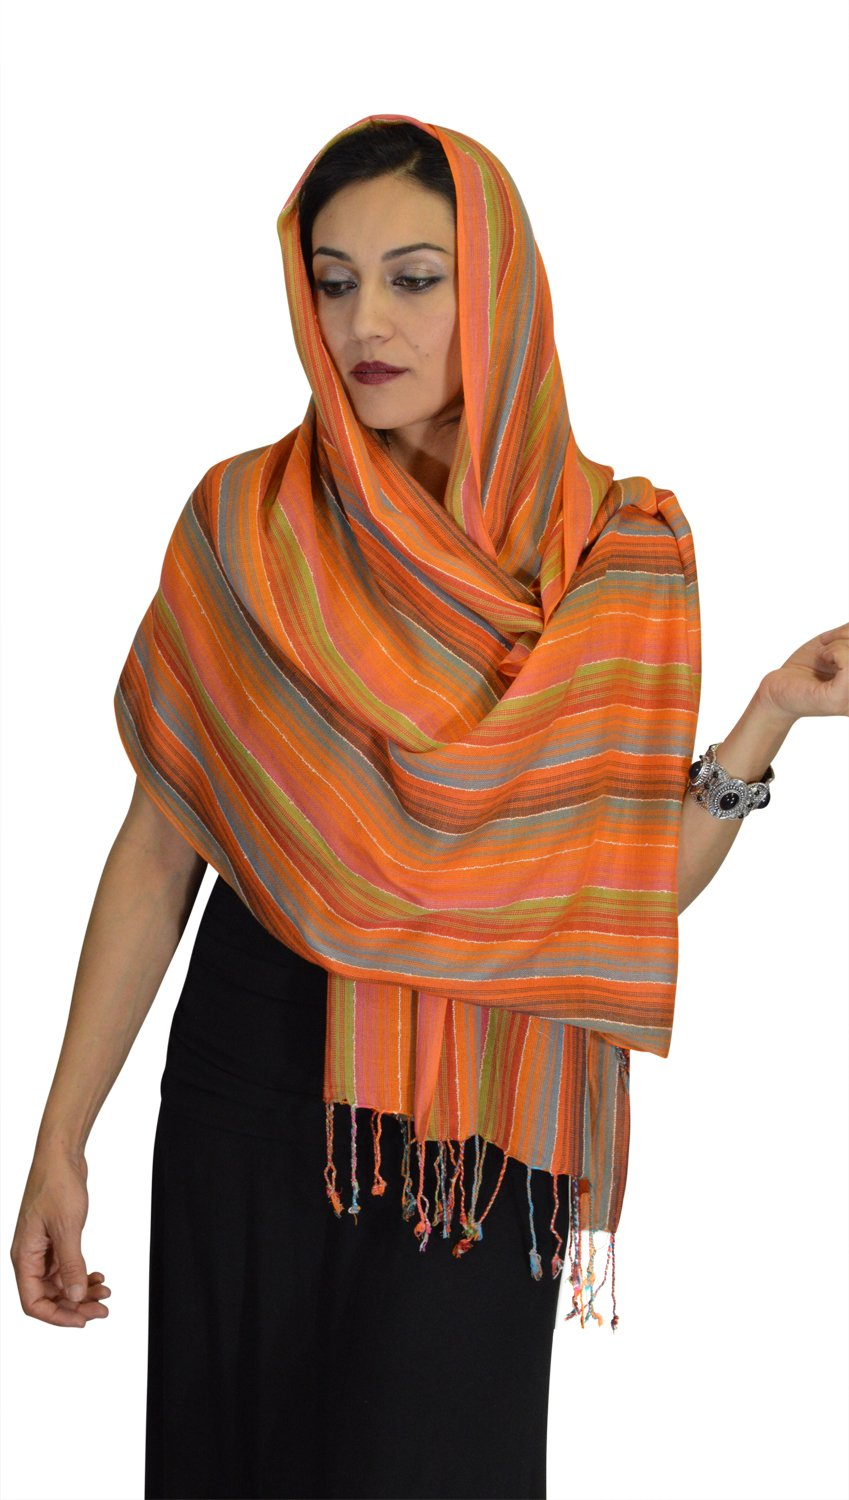 Moroccan Shoulder Shawl Breathable Oblong Head Scarf cotton Exquisite Wrap by Treasures of Morocco Shawls (Image #3)